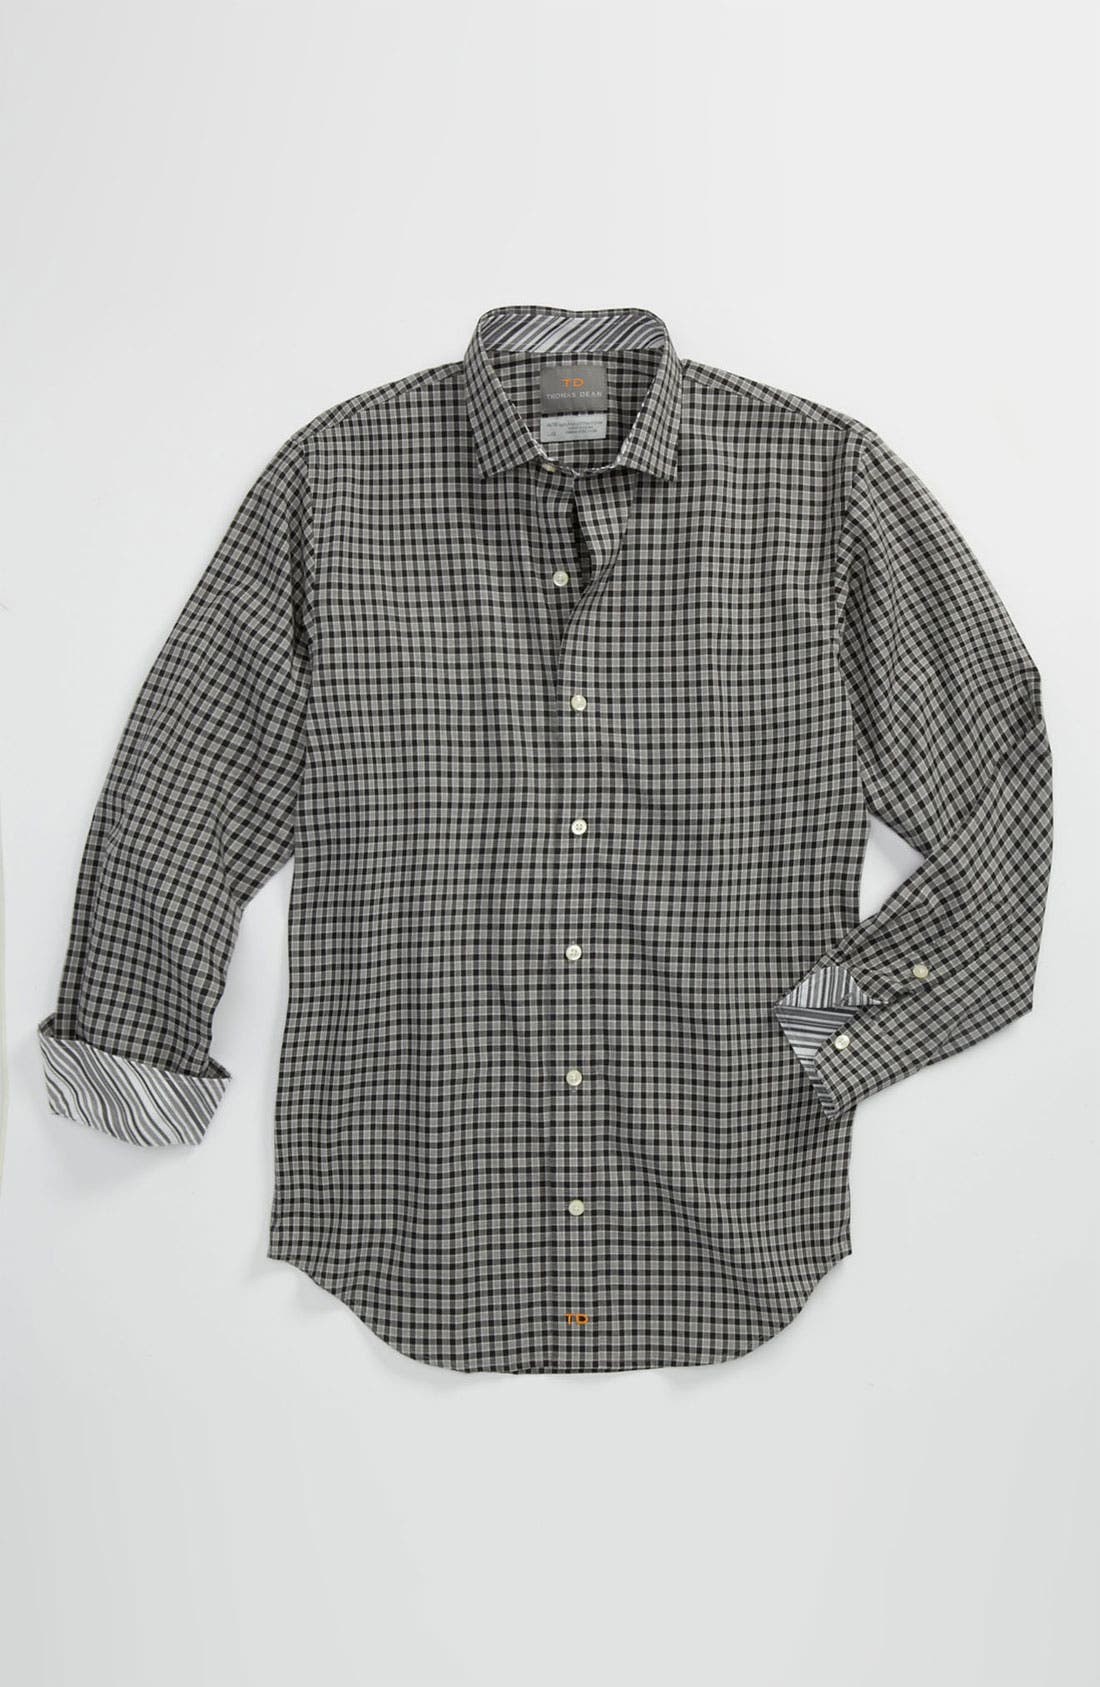 Alternate Image 1 Selected - Thomas Dean Dress Shirt (Big Boys)